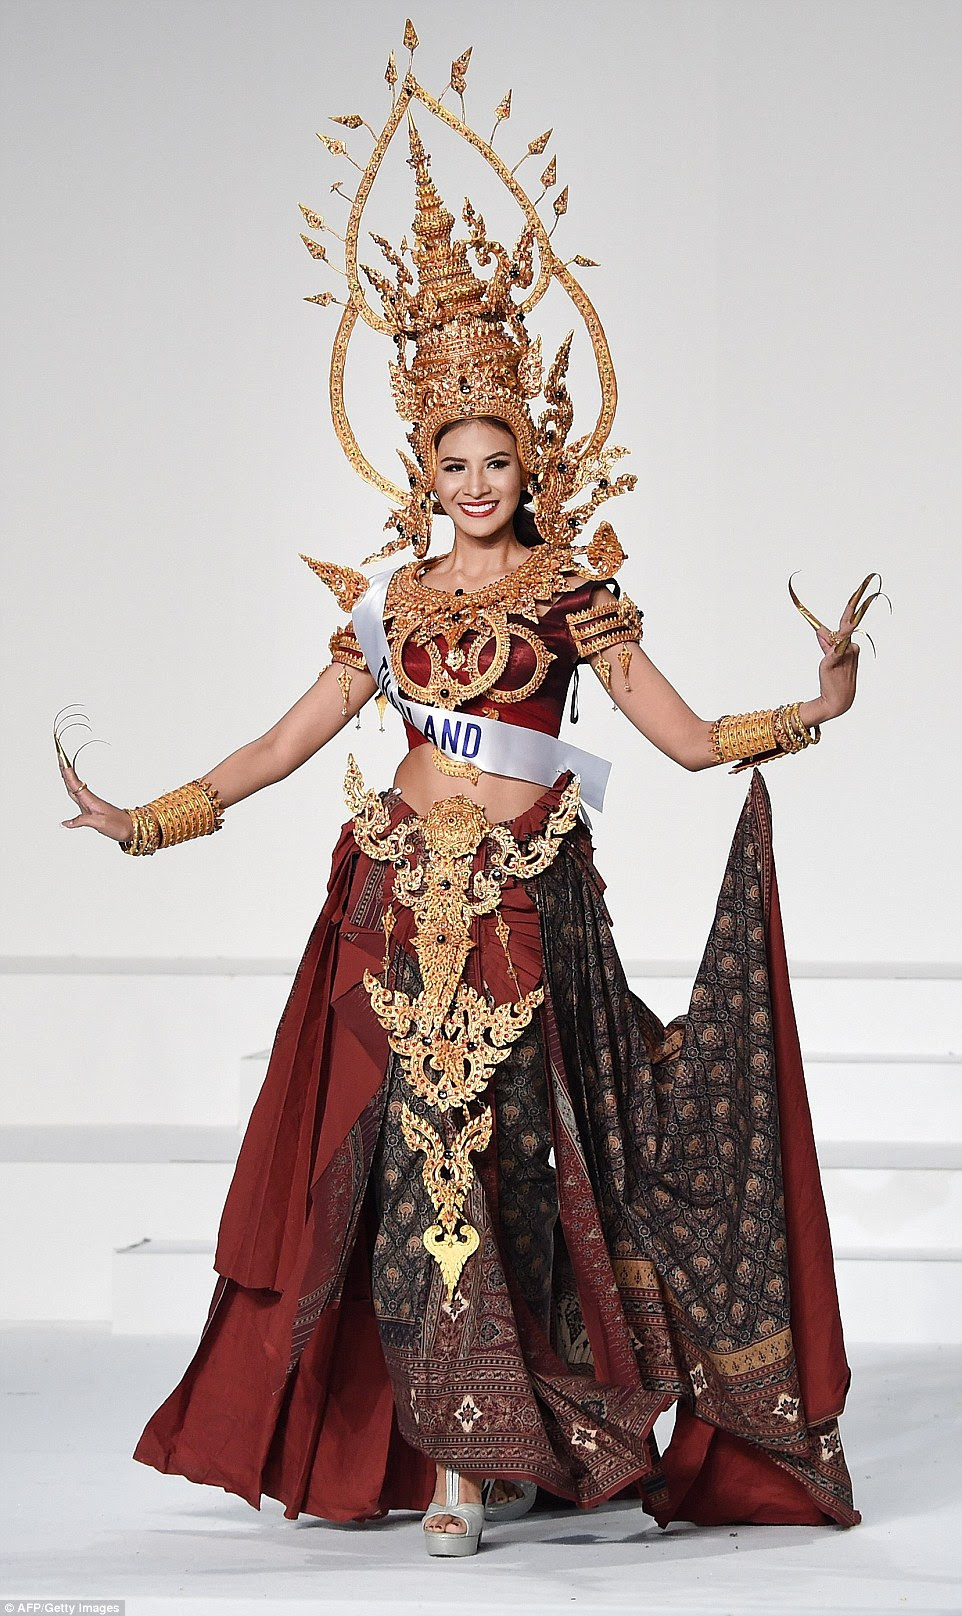 Miss Thailand wore the traditional dress of a fingernail dancer, which you would recognise if you have ever been to Thailand, or indeed a fancy Thai restaurant. Of course Sasi Sintawee wore a particularly intricate one, with a temple-inspired headdress which is so detailed and tall it wouldn't look out of place in a Thai miniature village. The gold continued around the collar, cuffs and waist, with her dress itself made in a sumptuous red silk with Oriental skirt folds and fabric design